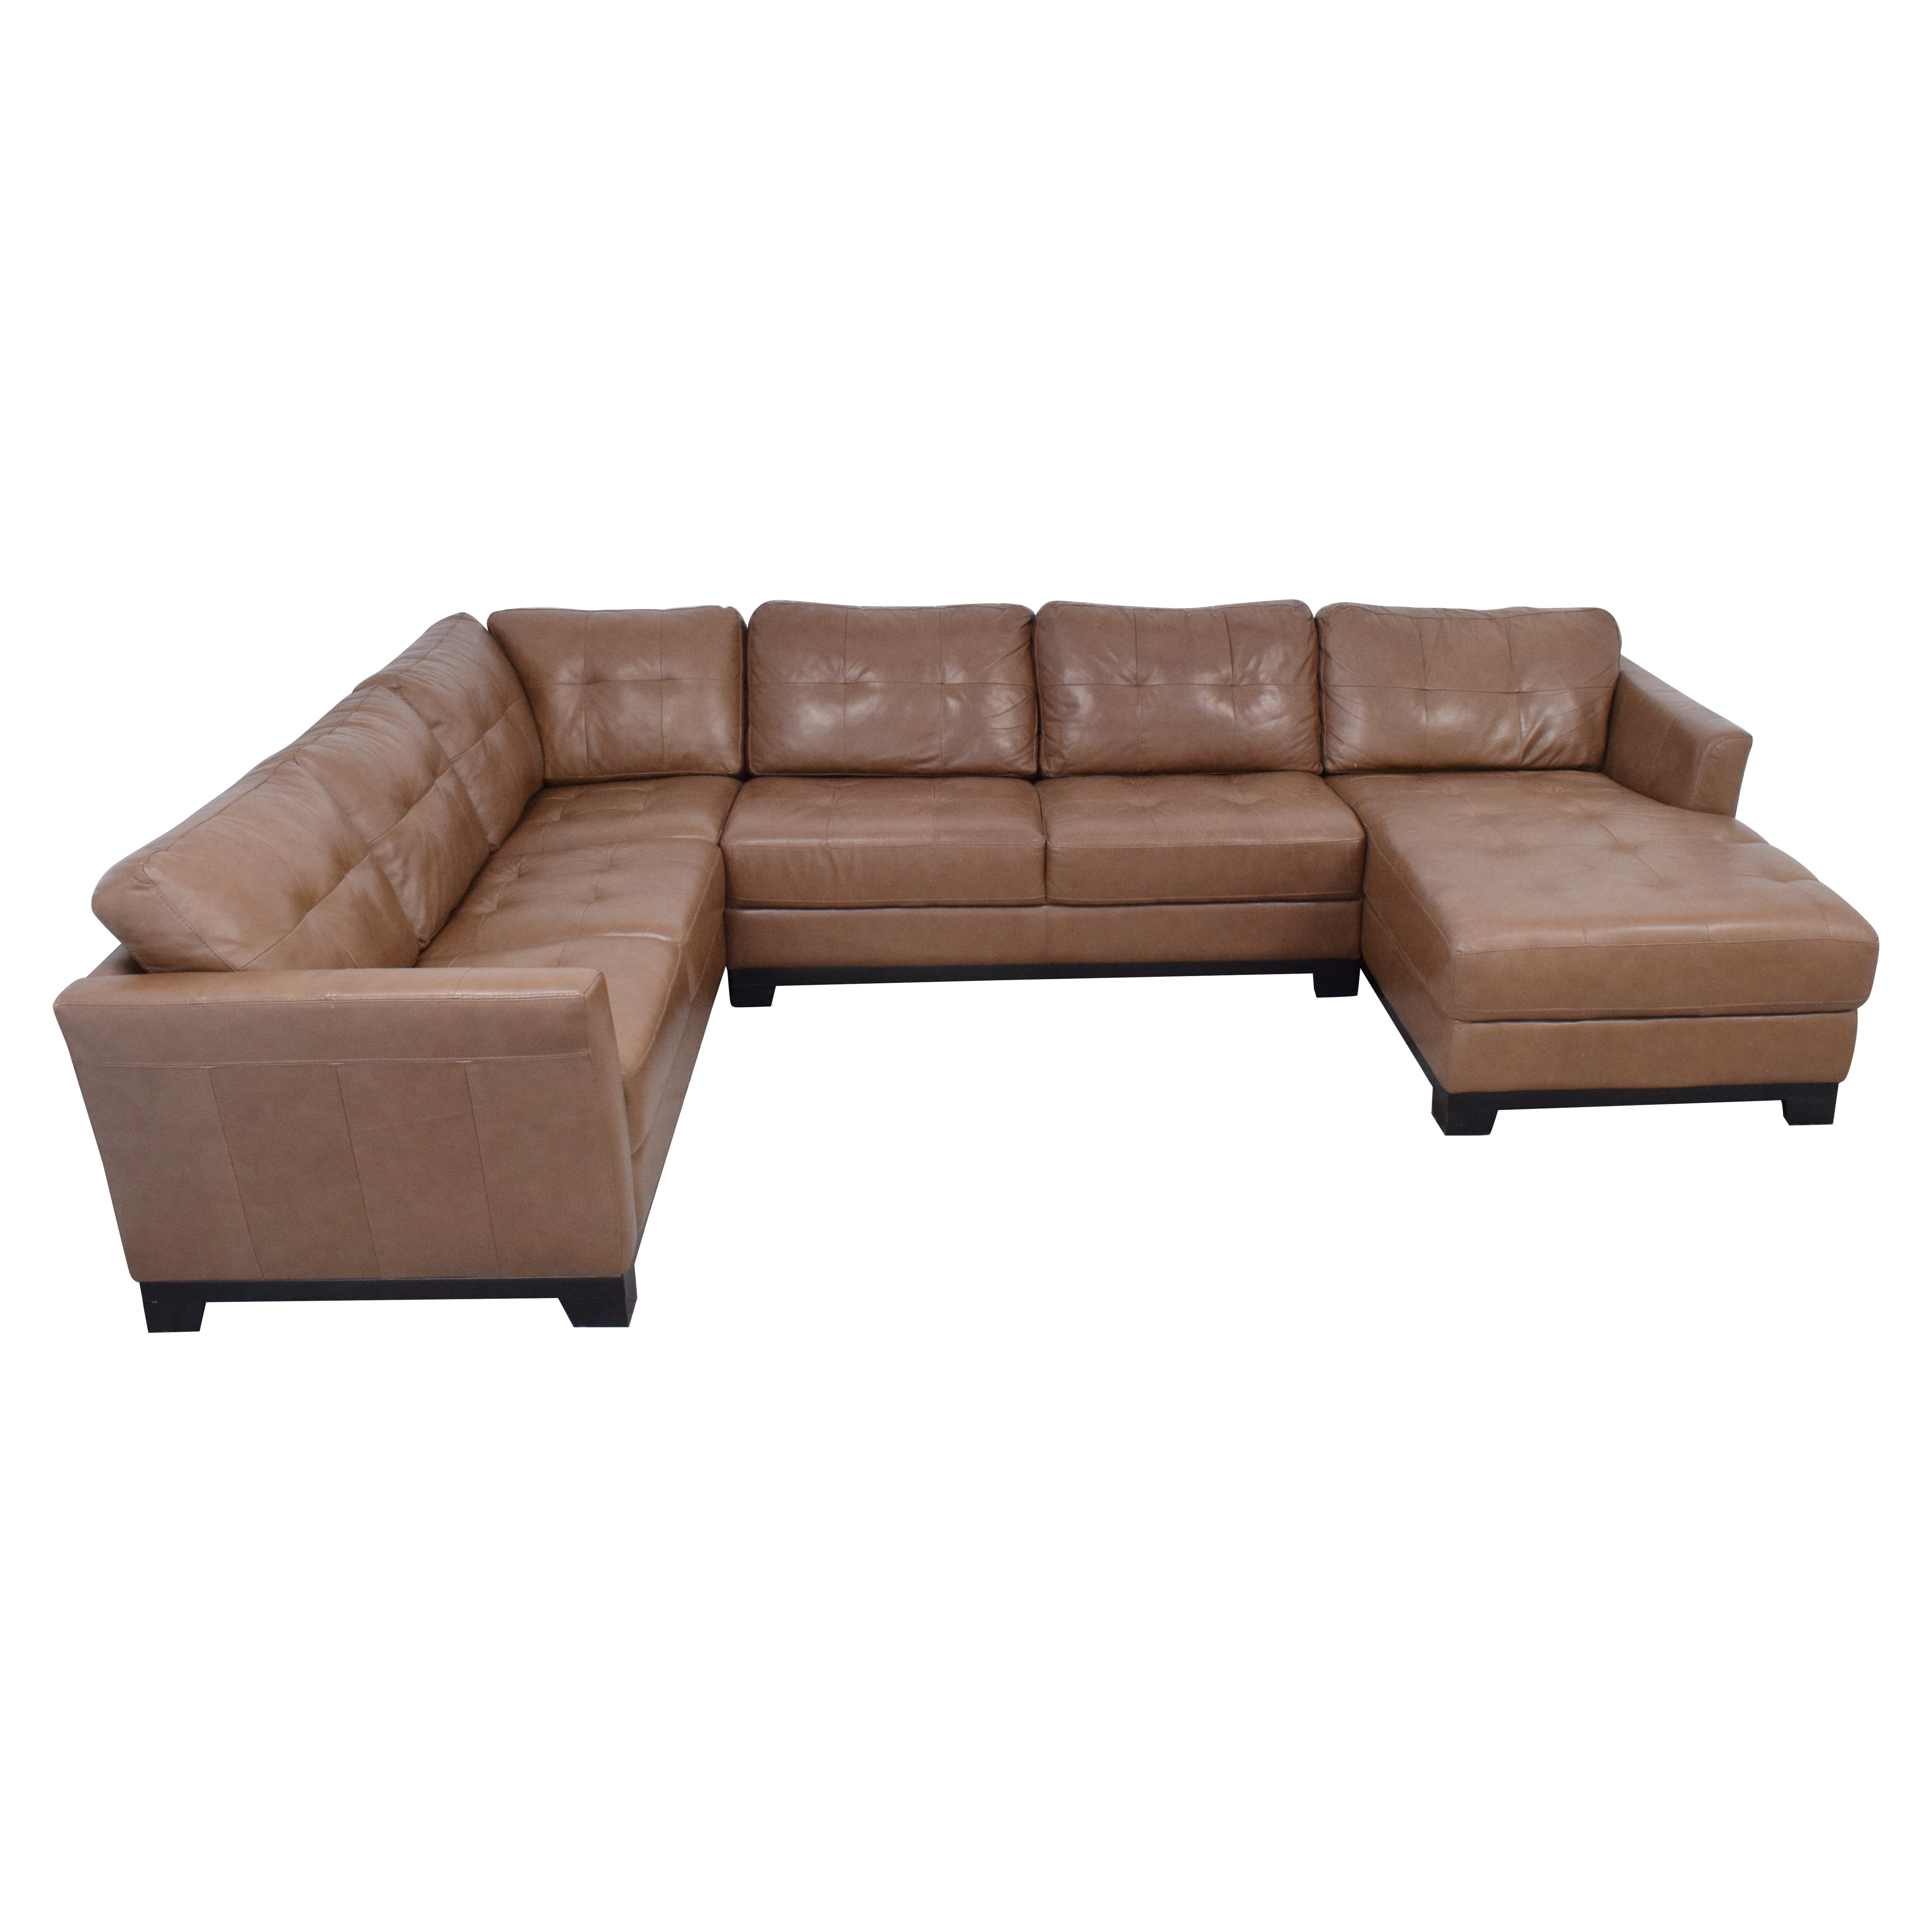 Chateau d'Ax Chateau d'Ax Sectional Sofa with Chaise ct